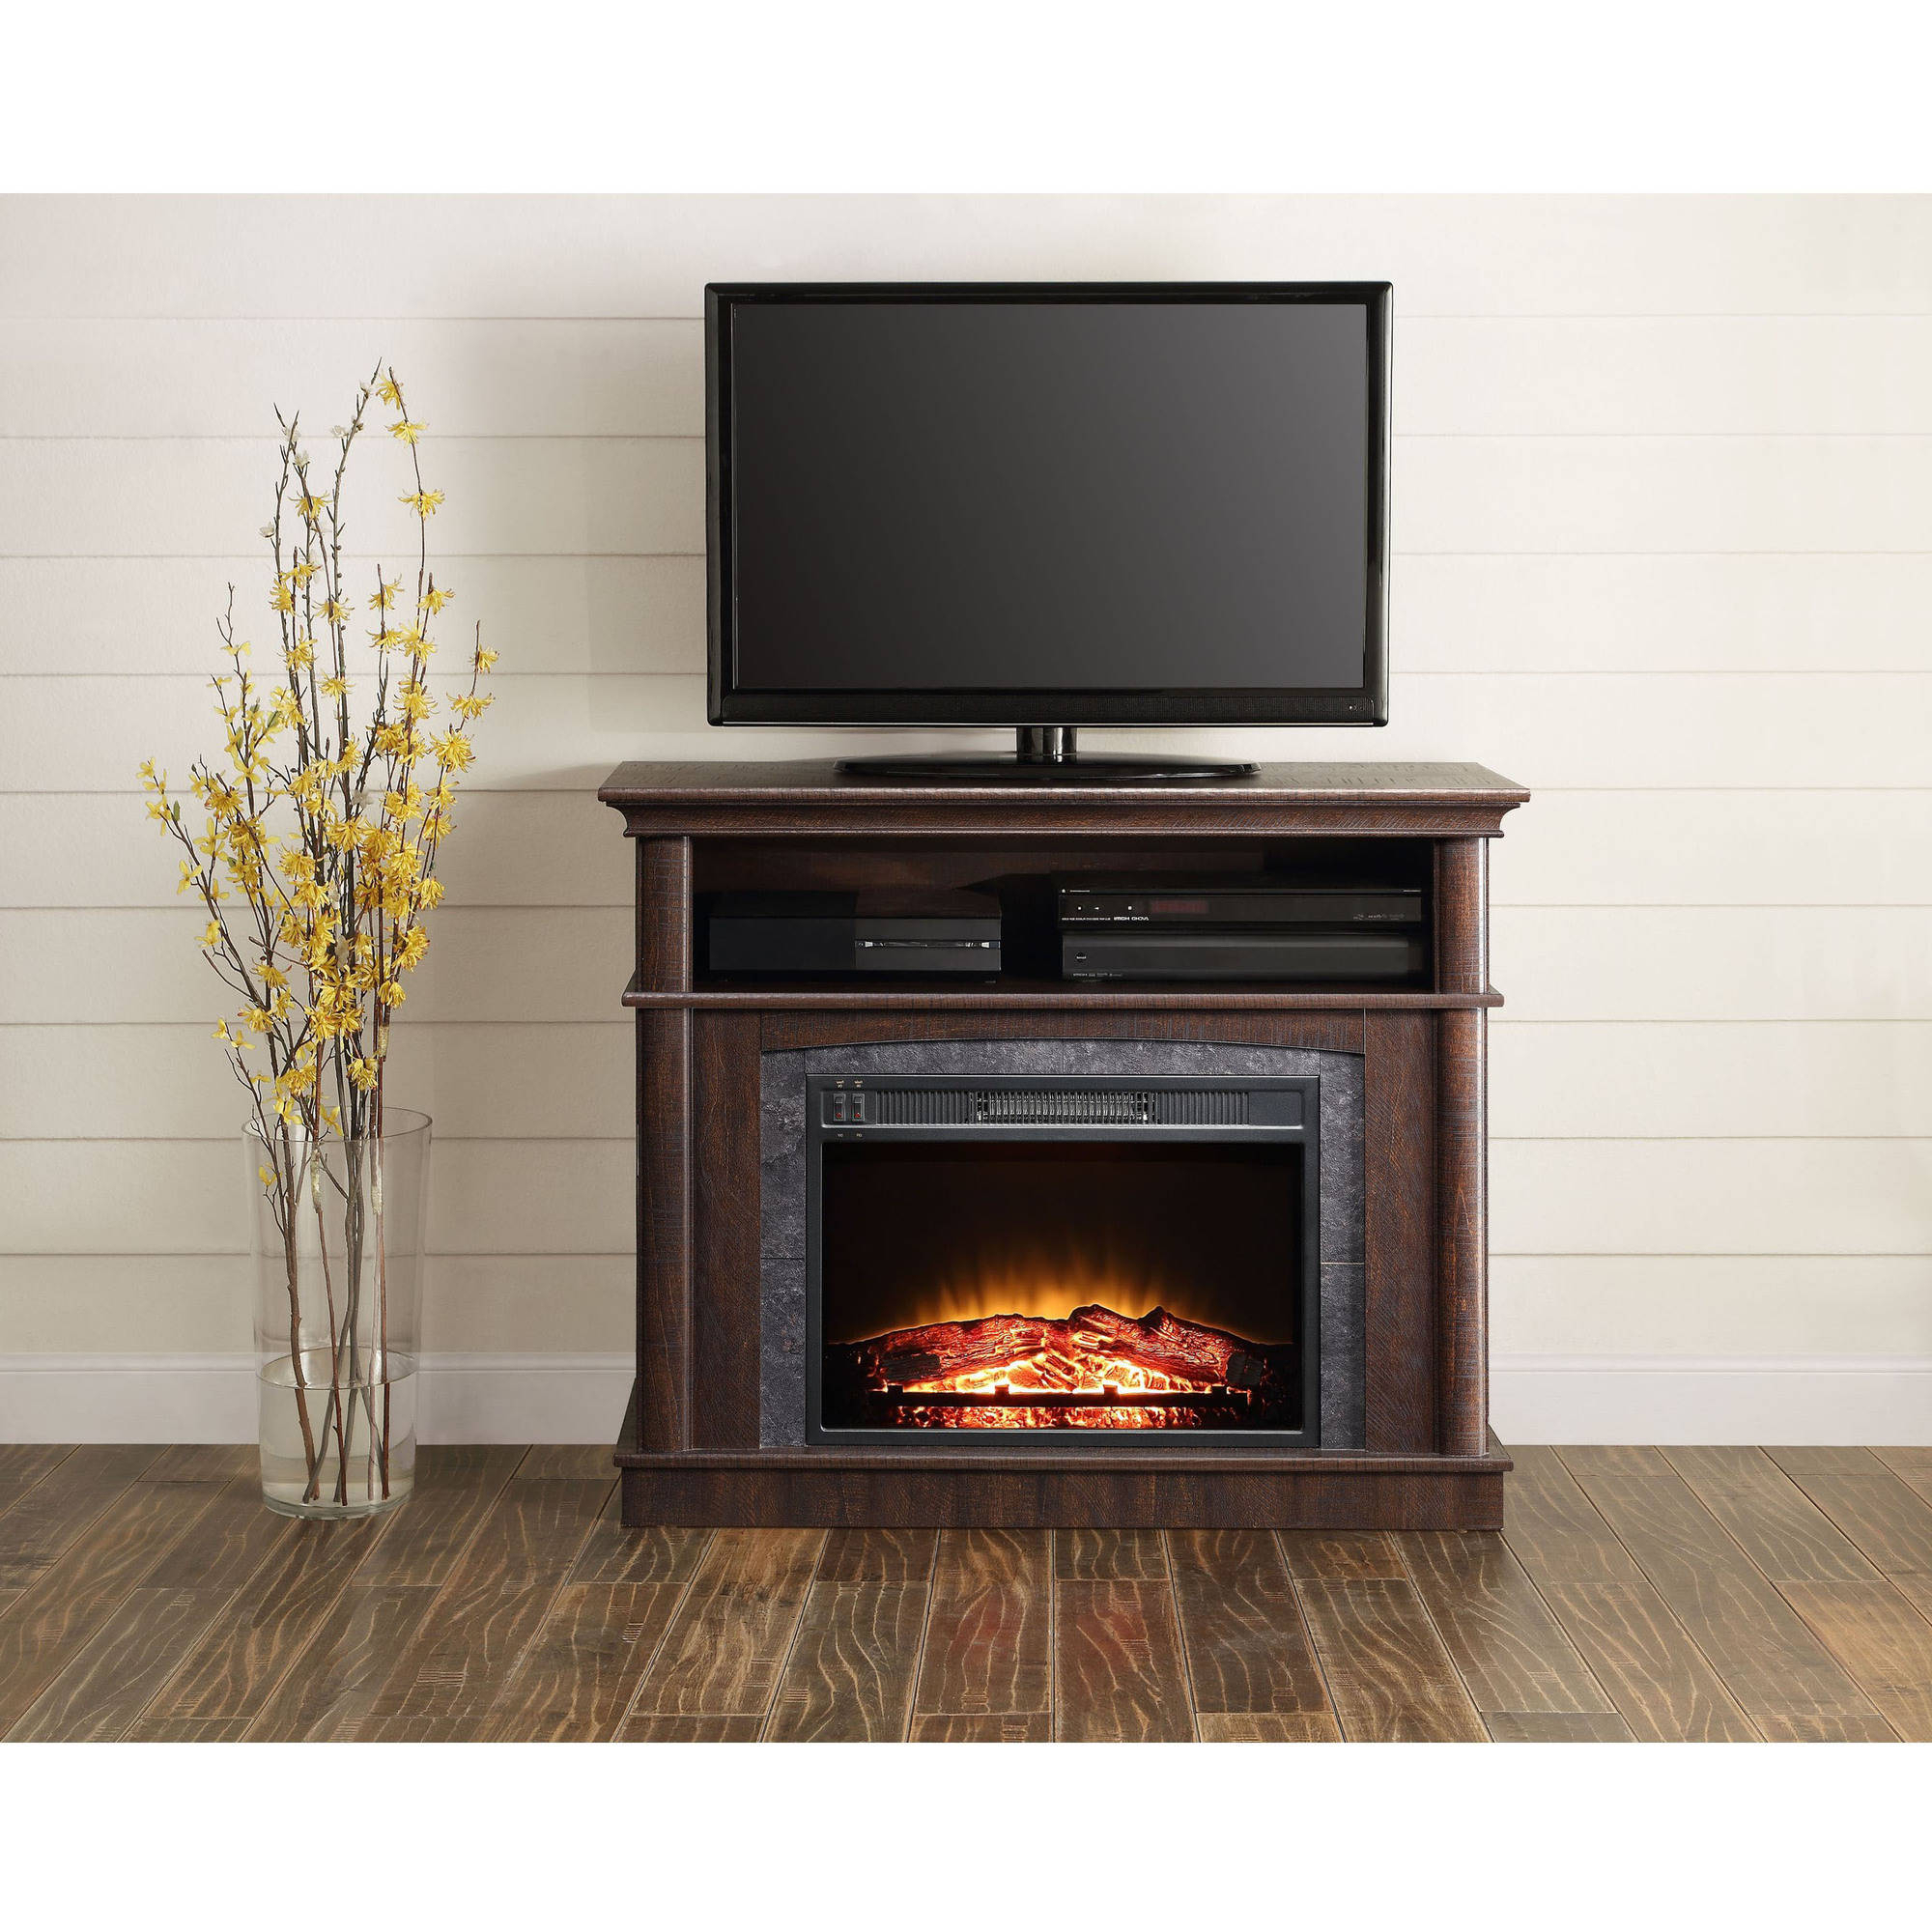 "Popular 50 Inch Fireplace Tv Stands Regarding Whalen Fireplace Media Console For Tvs Up To 50"", Rustic Brown (View 14 of 20)"